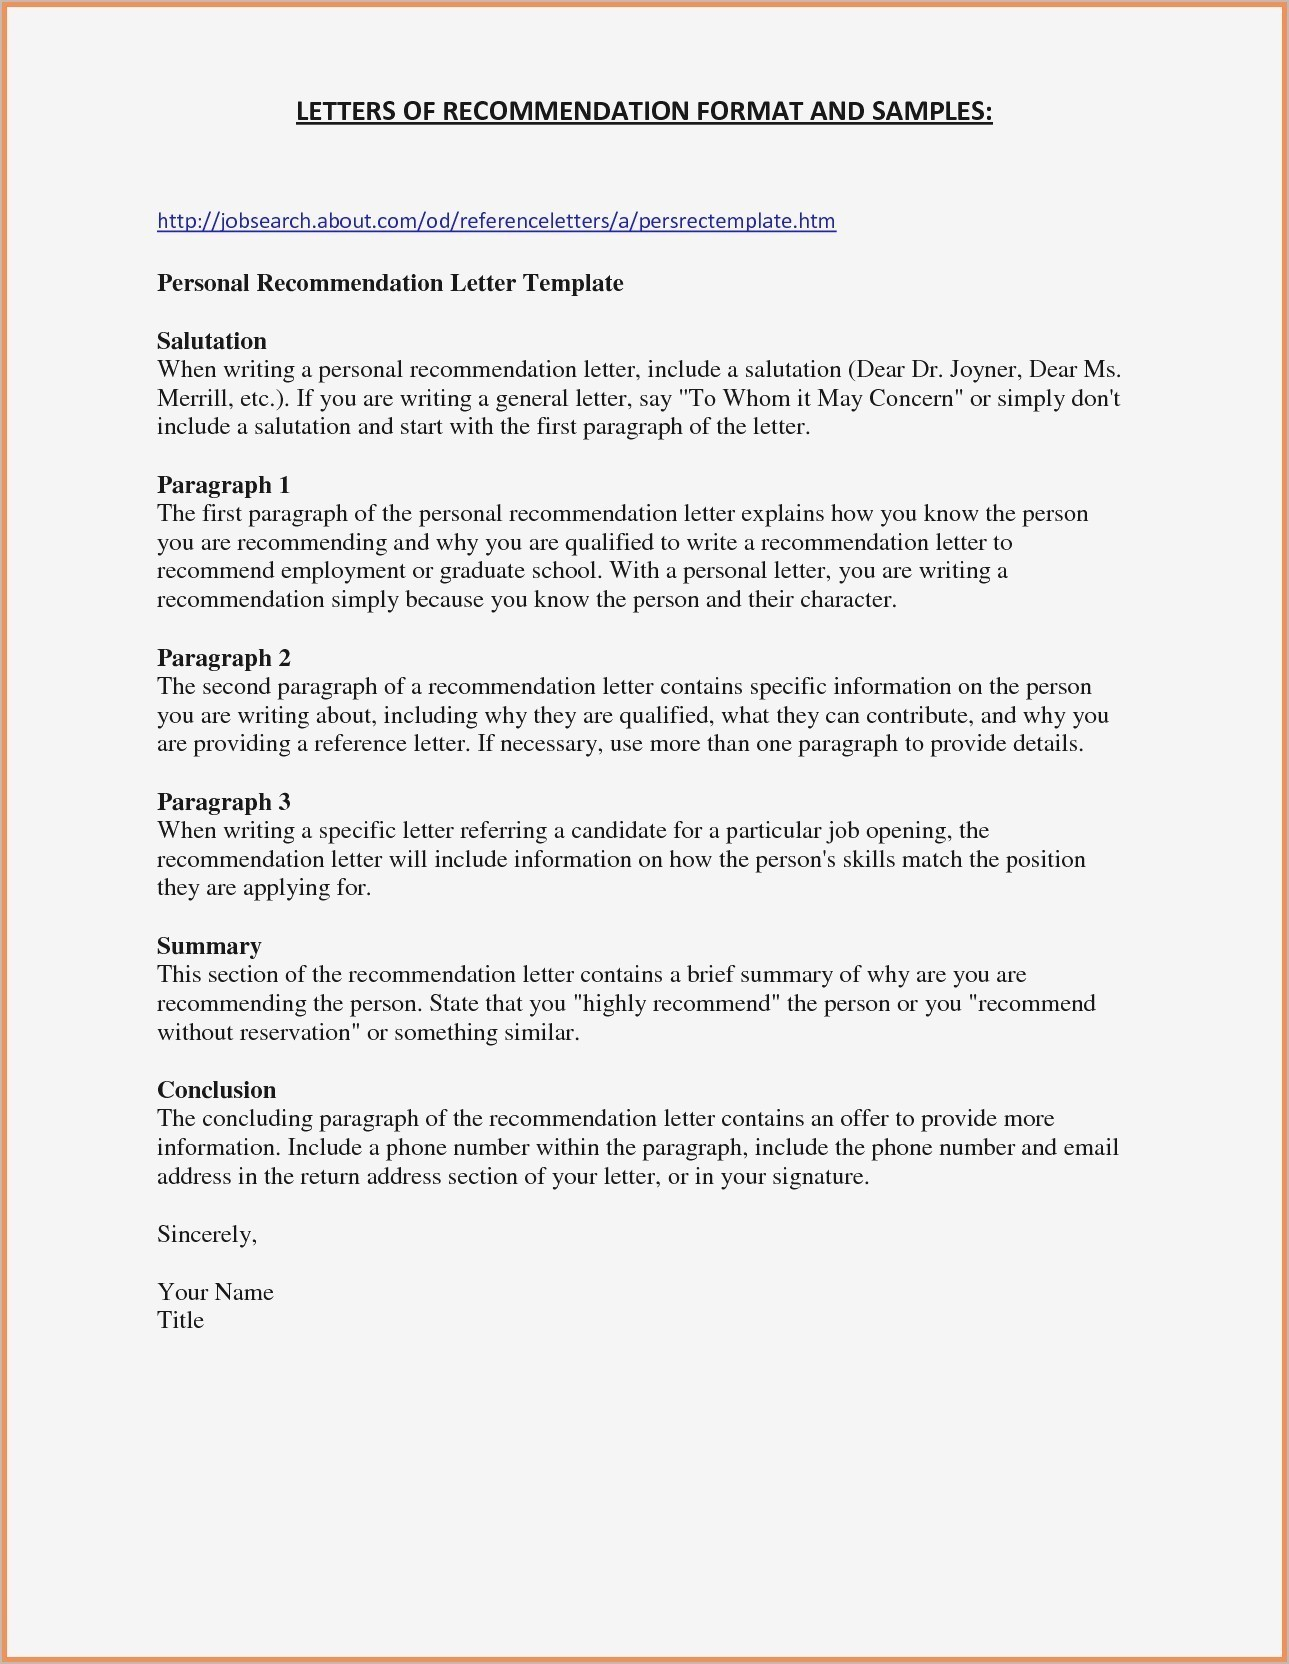 College Recommendation Letter Template - Job Re Mendation Letter Samples Valid Sample Job Re Mendation